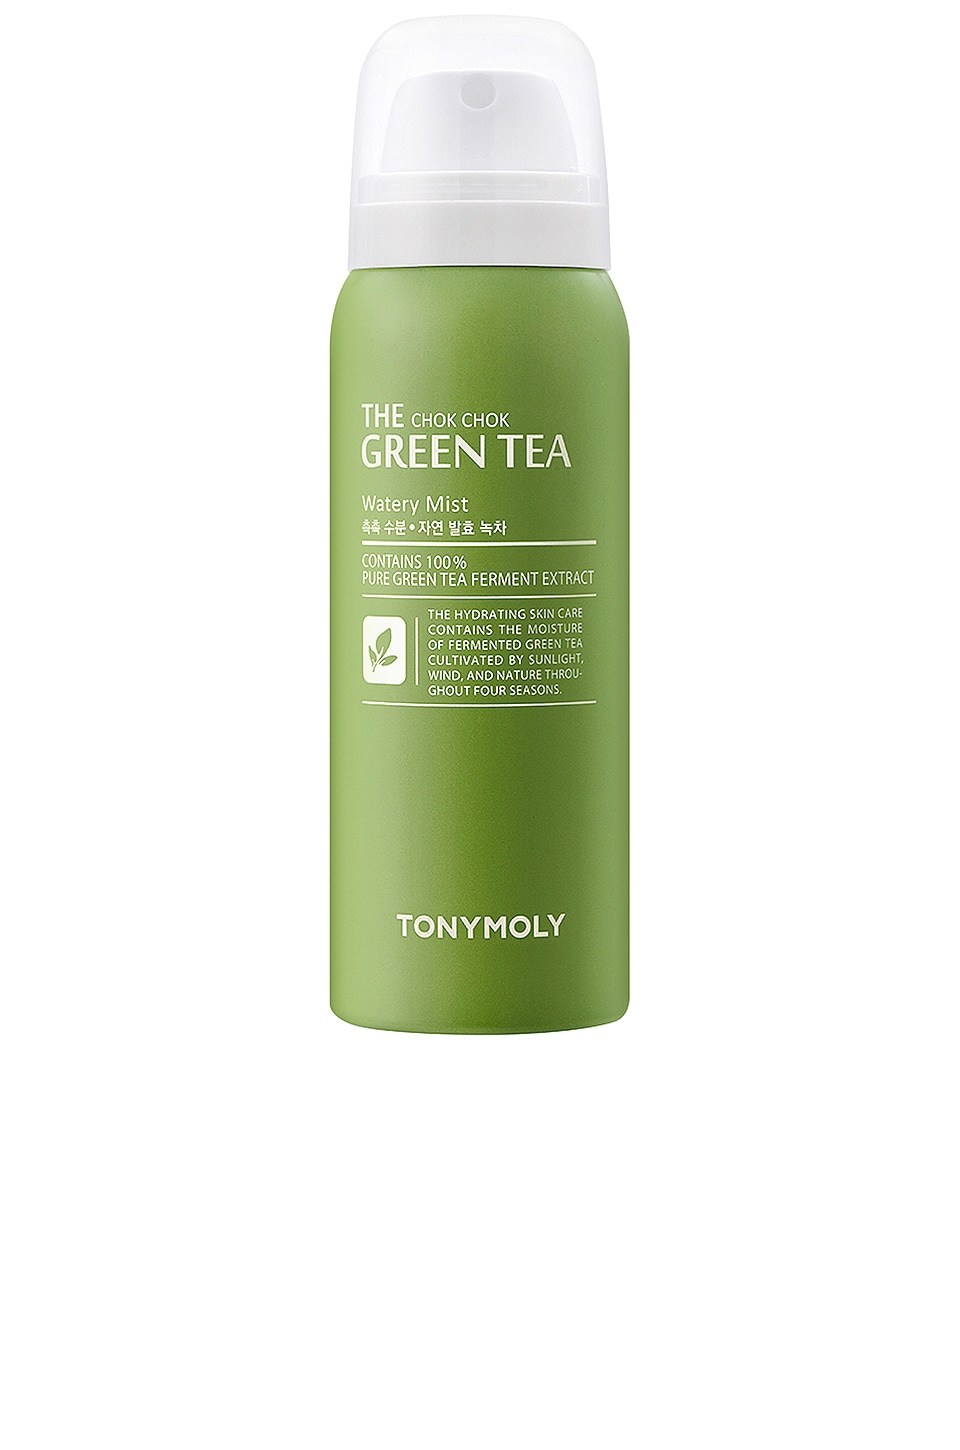 Tonymoly The Chok Chok Green Tea Watery Mist